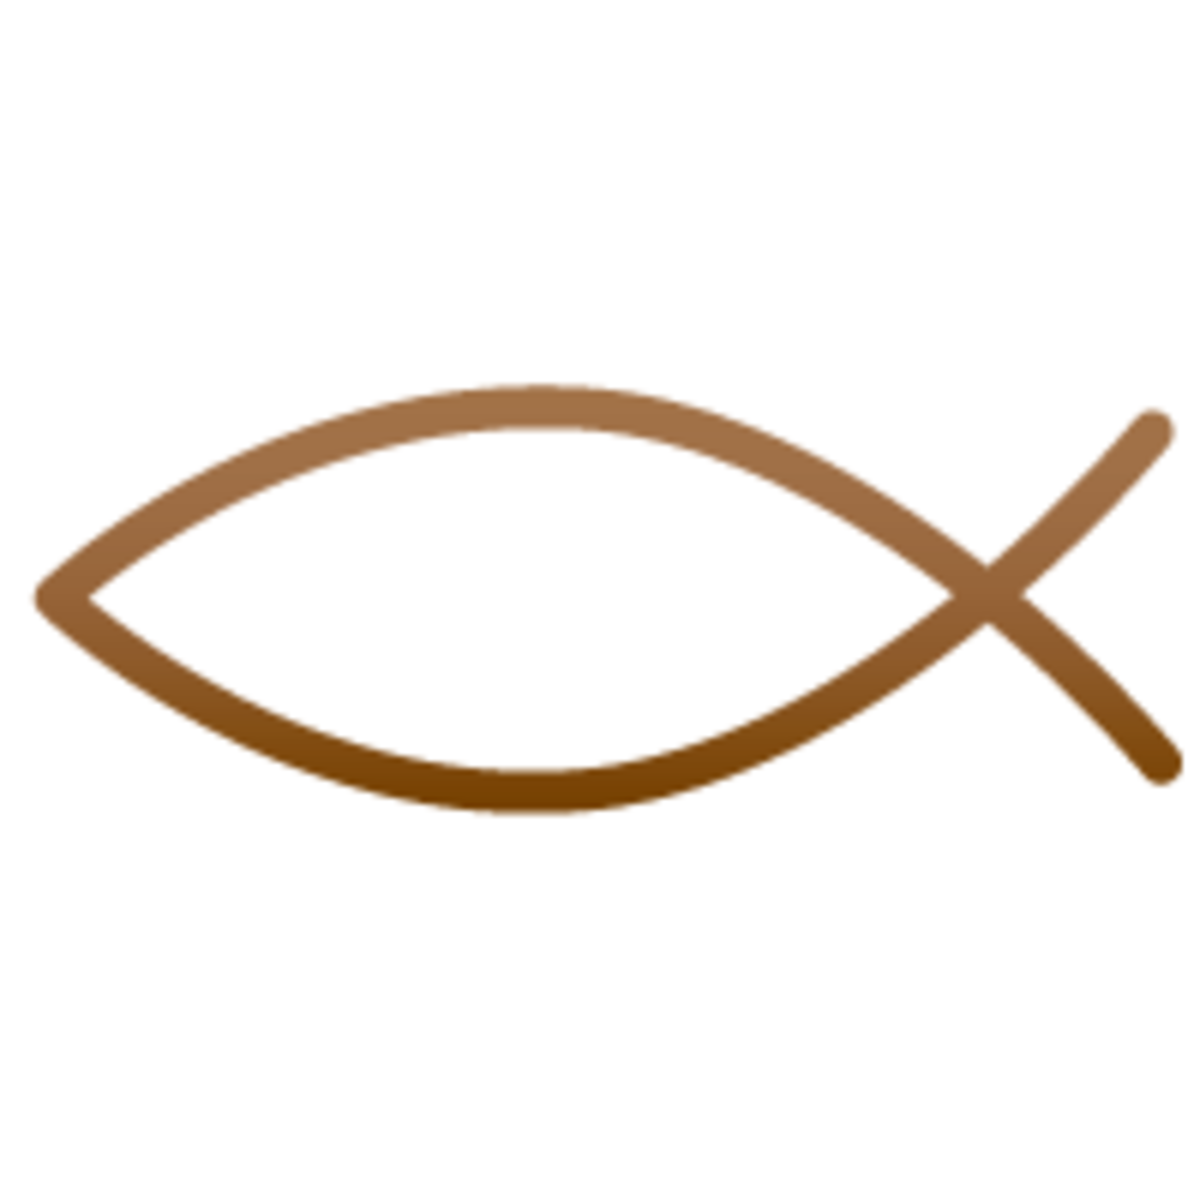 common-religious-symbols-what-do-they-mean